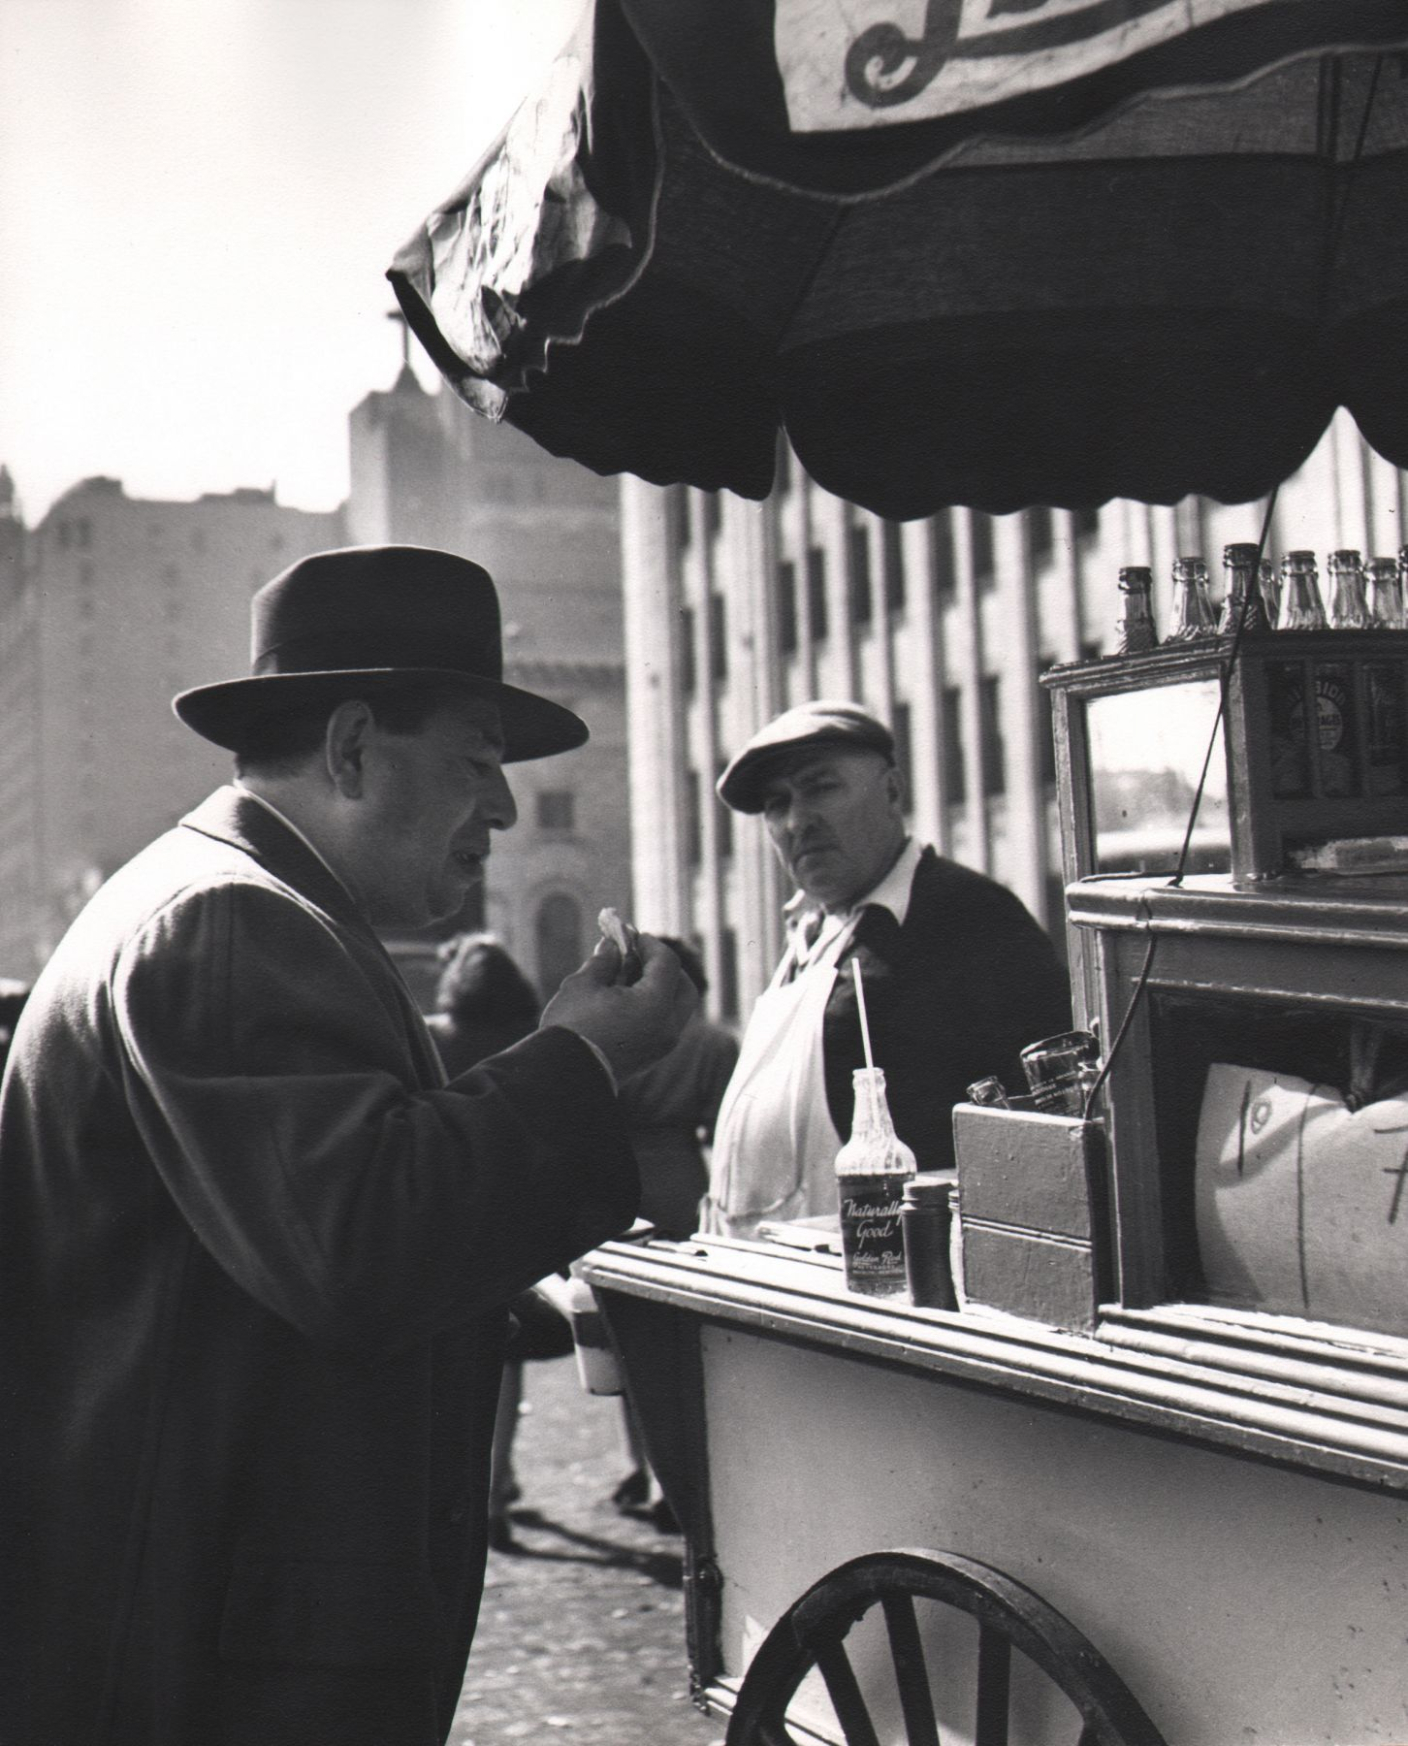 Esther Bubley, On South Street at noon time, 1946